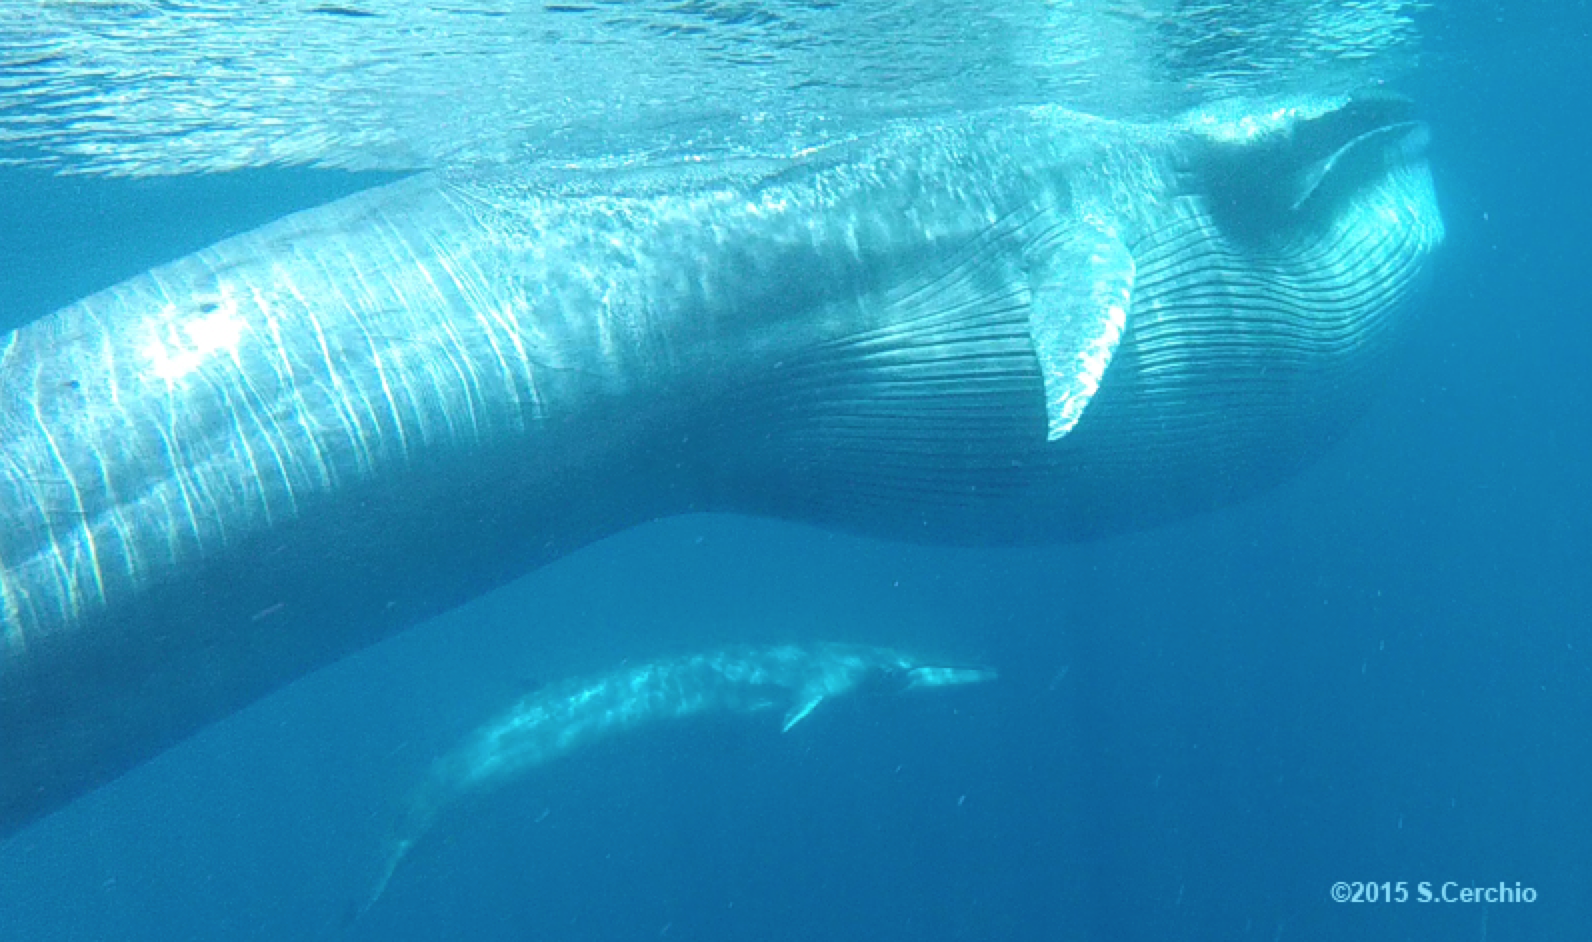 An Omura's whale and her calf in the ocean.